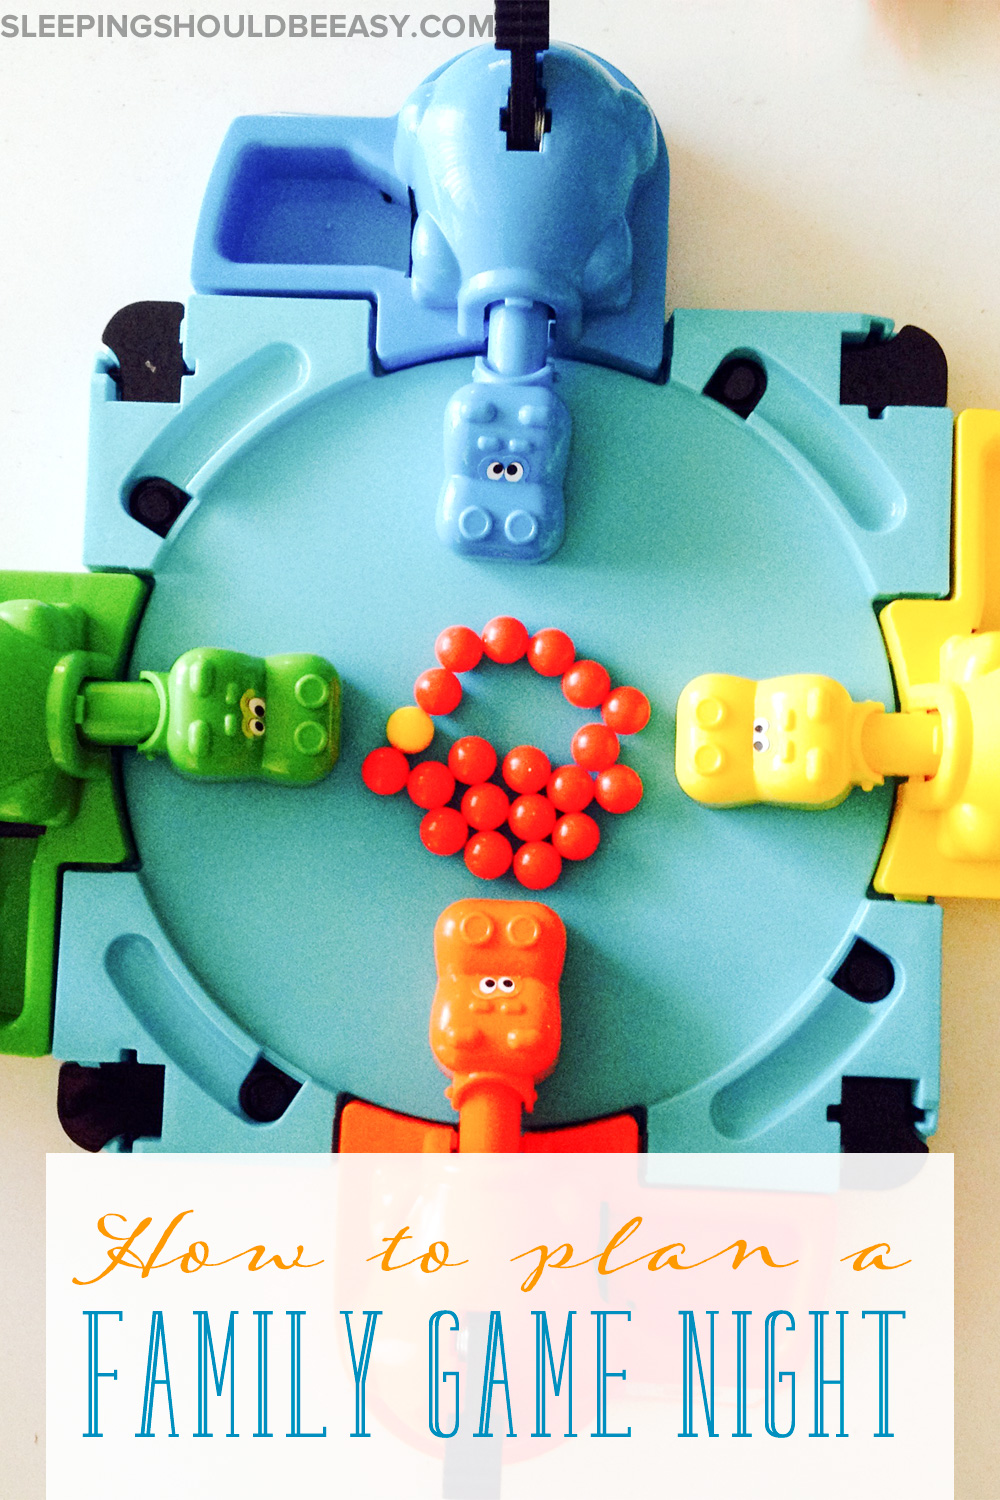 How to Plan a Family Game Night